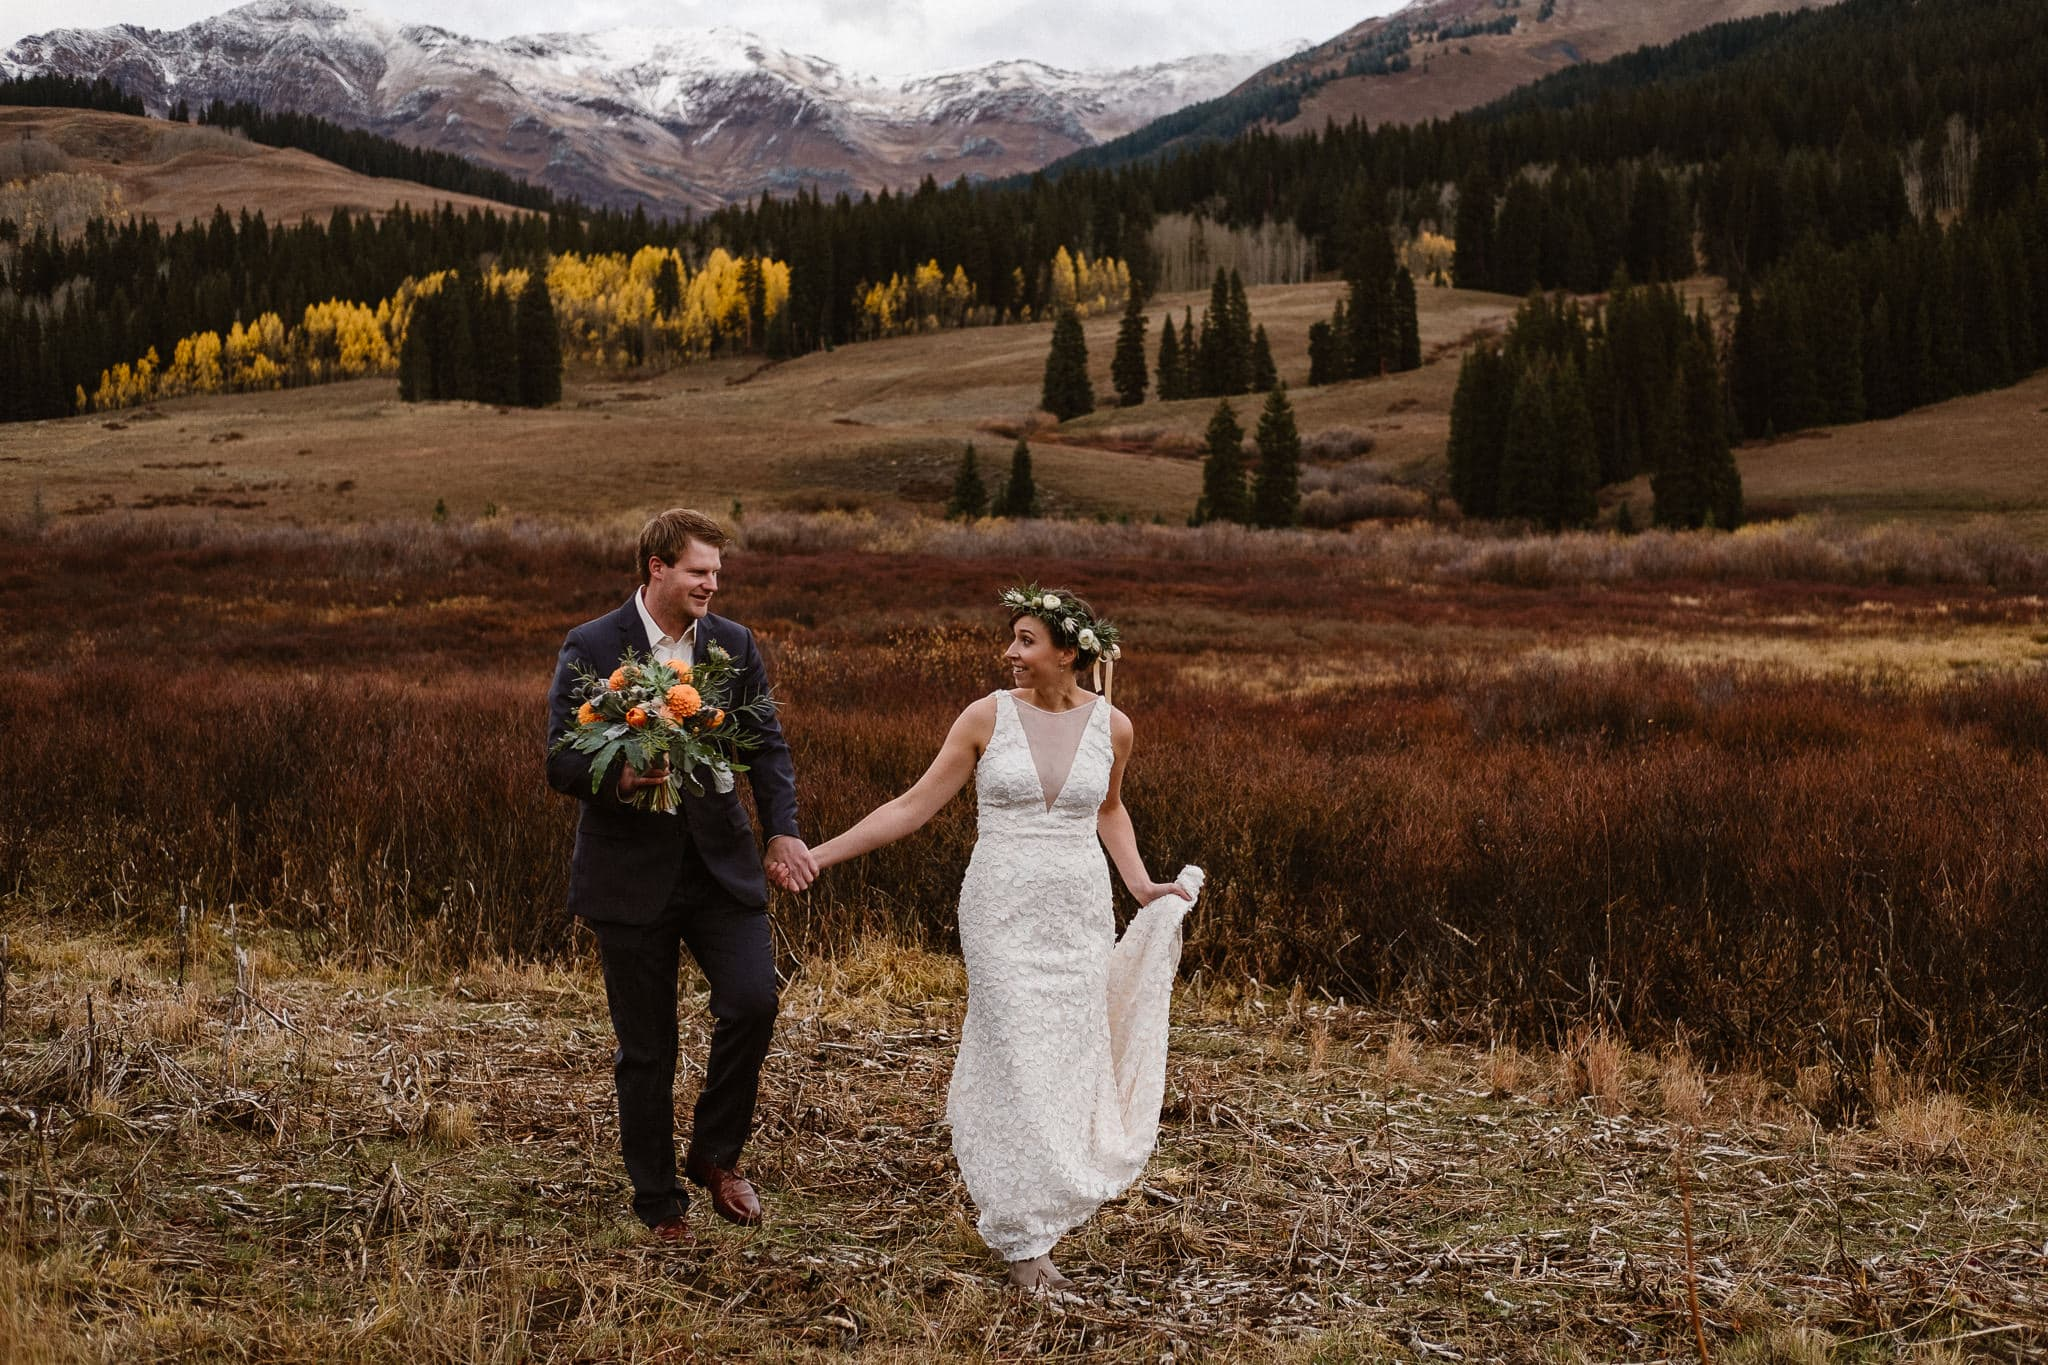 Crested Butte Wedding Photographer, Scarp Ridge Lodge intimate elopement photographer, bride and groom walking